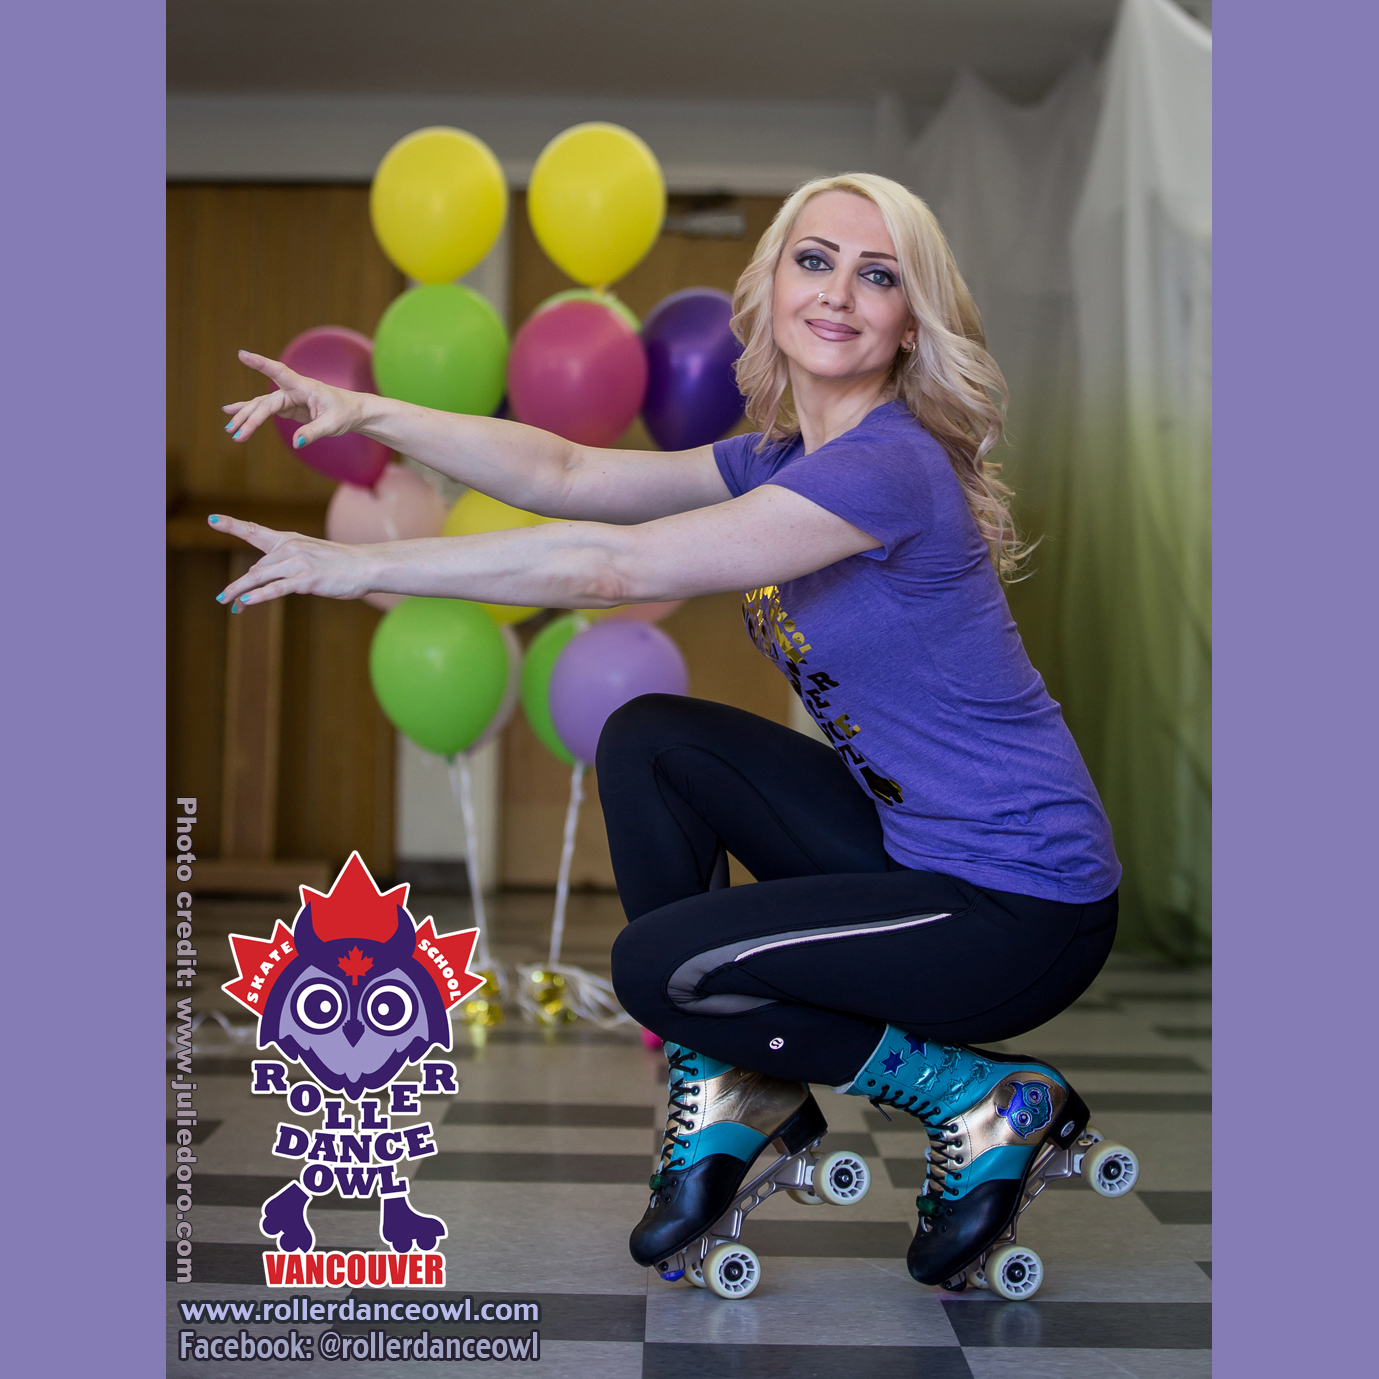 Roller Dance Owl Founder and Instructor